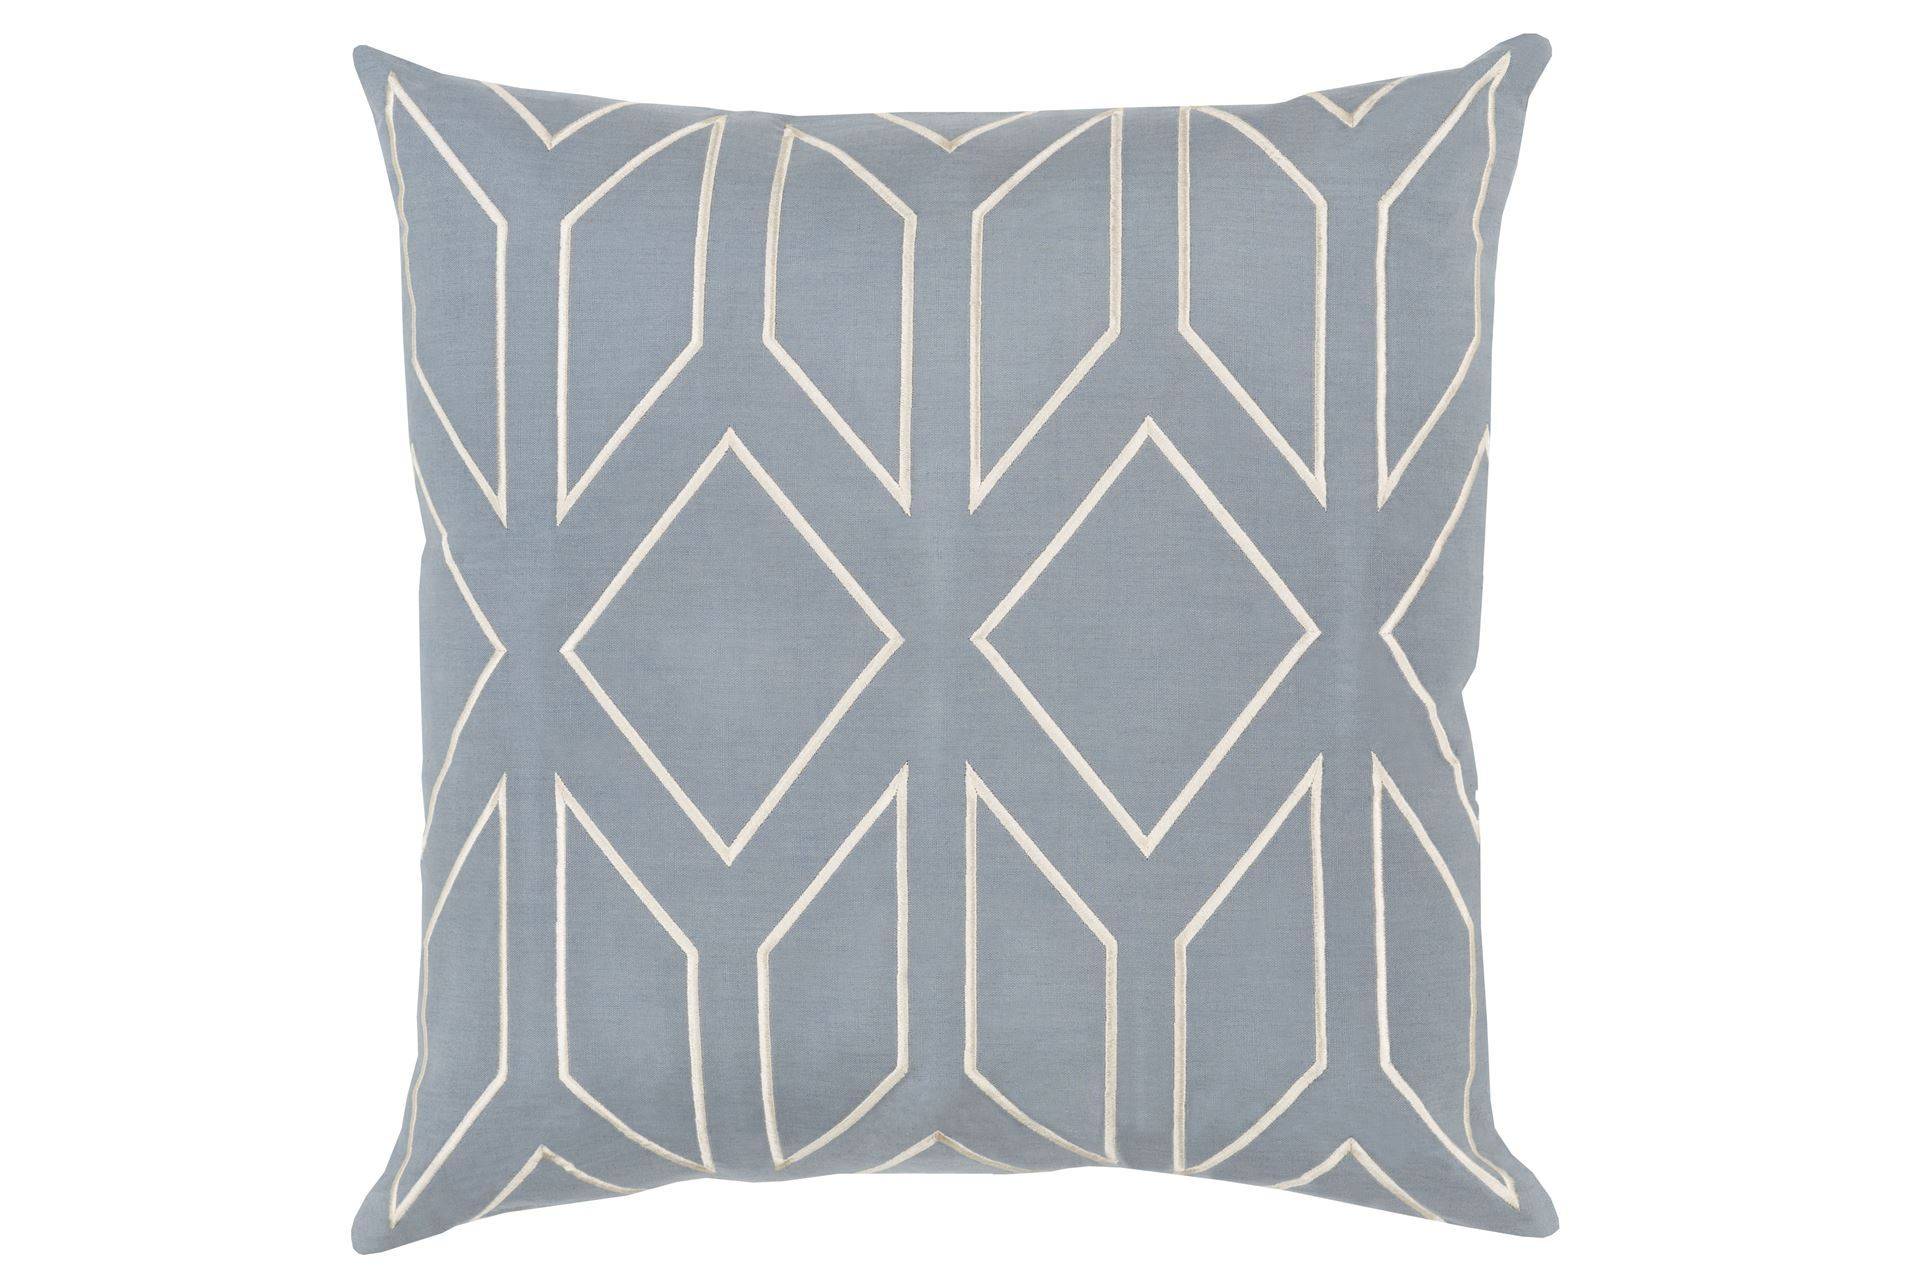 Dusty Blue Decorative Pillows : Accent Pillow-Nora Dusty Blue 18X18 - Living Spaces